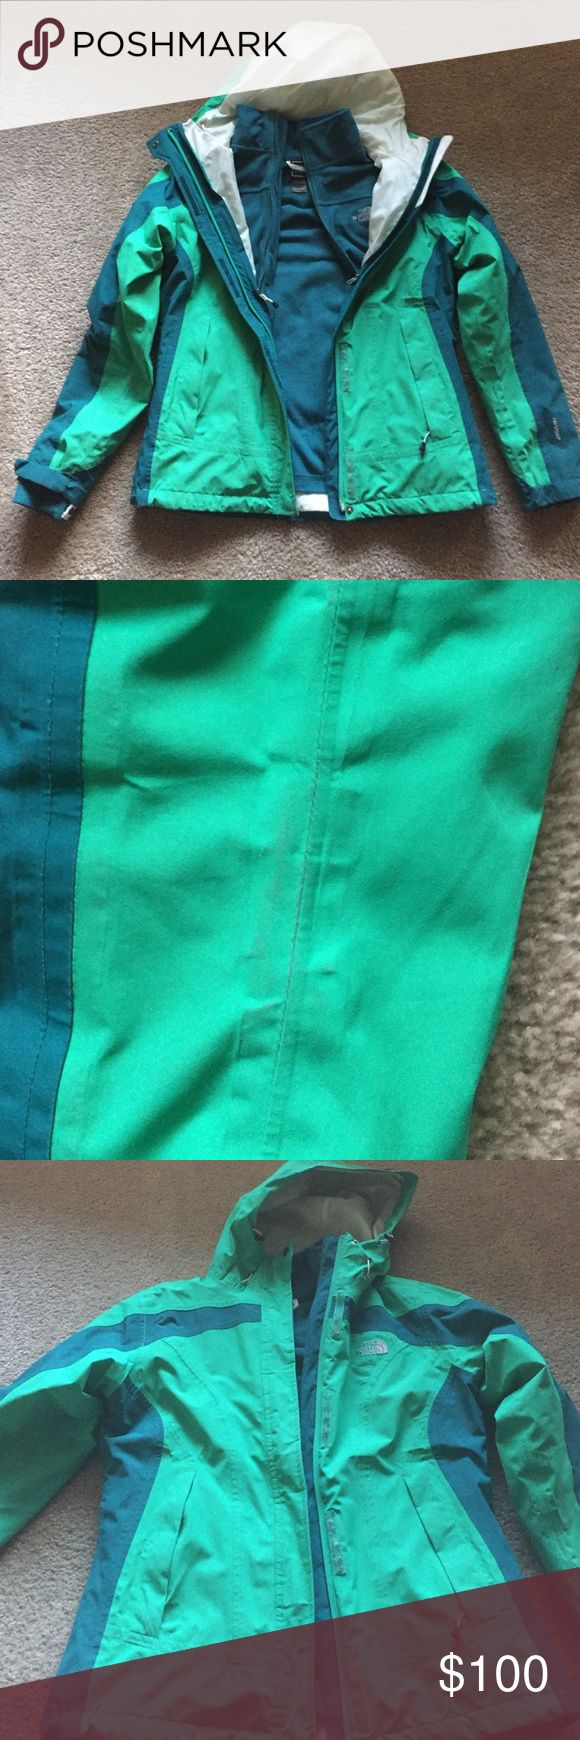 Northface triclimate jacket Lightly worn. Slight discoloration on sleeves, could easily be scrubbed. Great condition The North Face Jackets & Coats